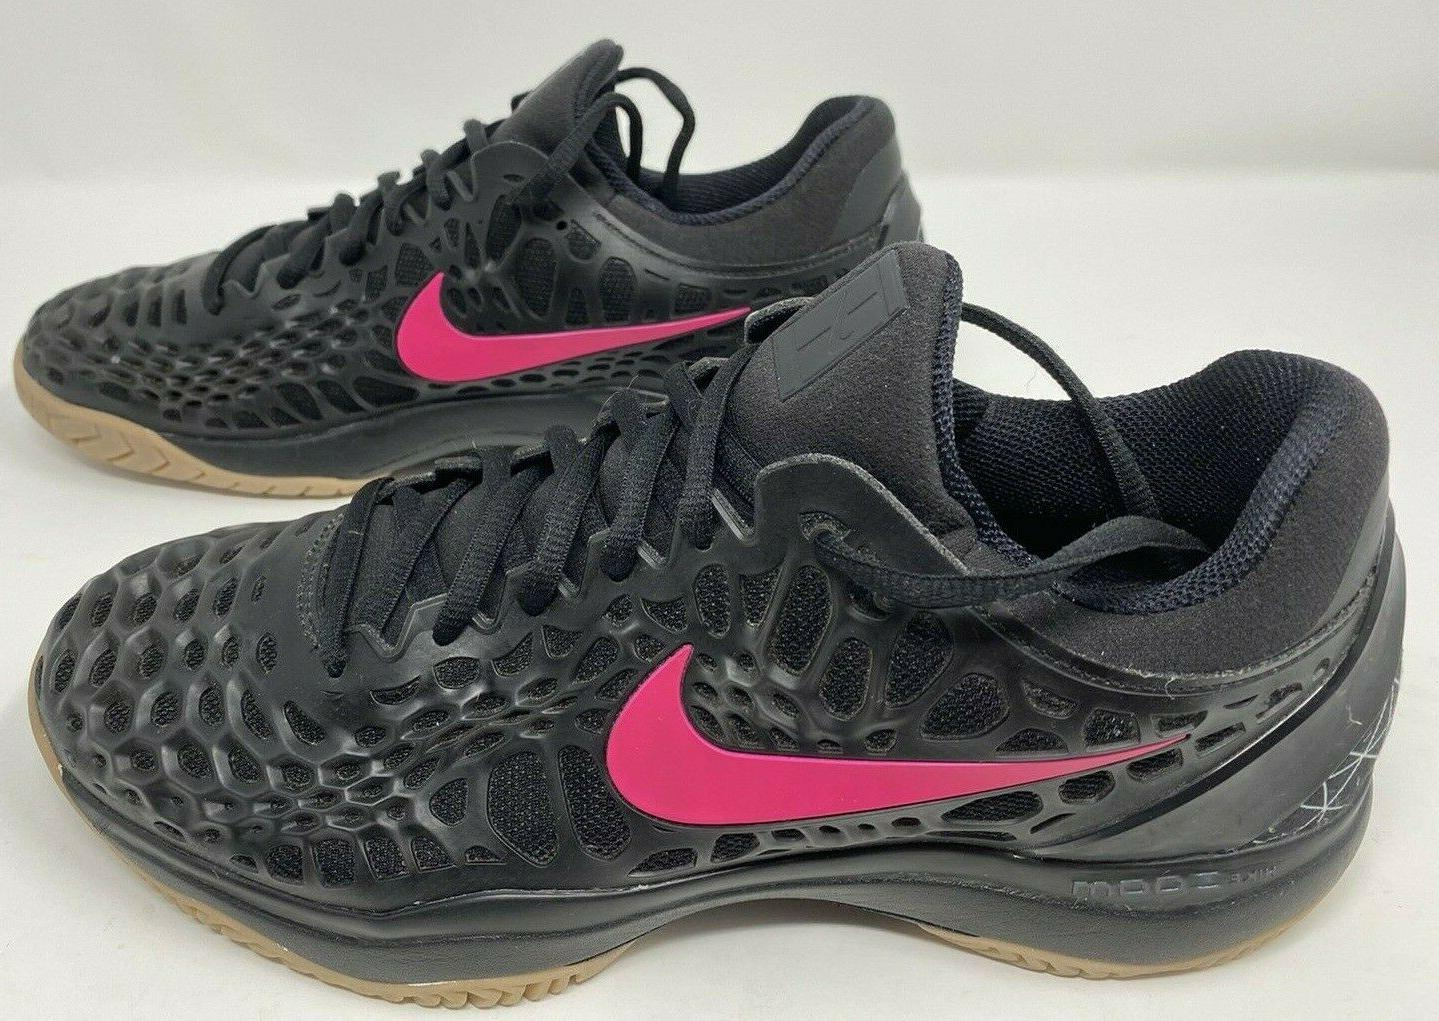 new air zoom cage 3 hc prm